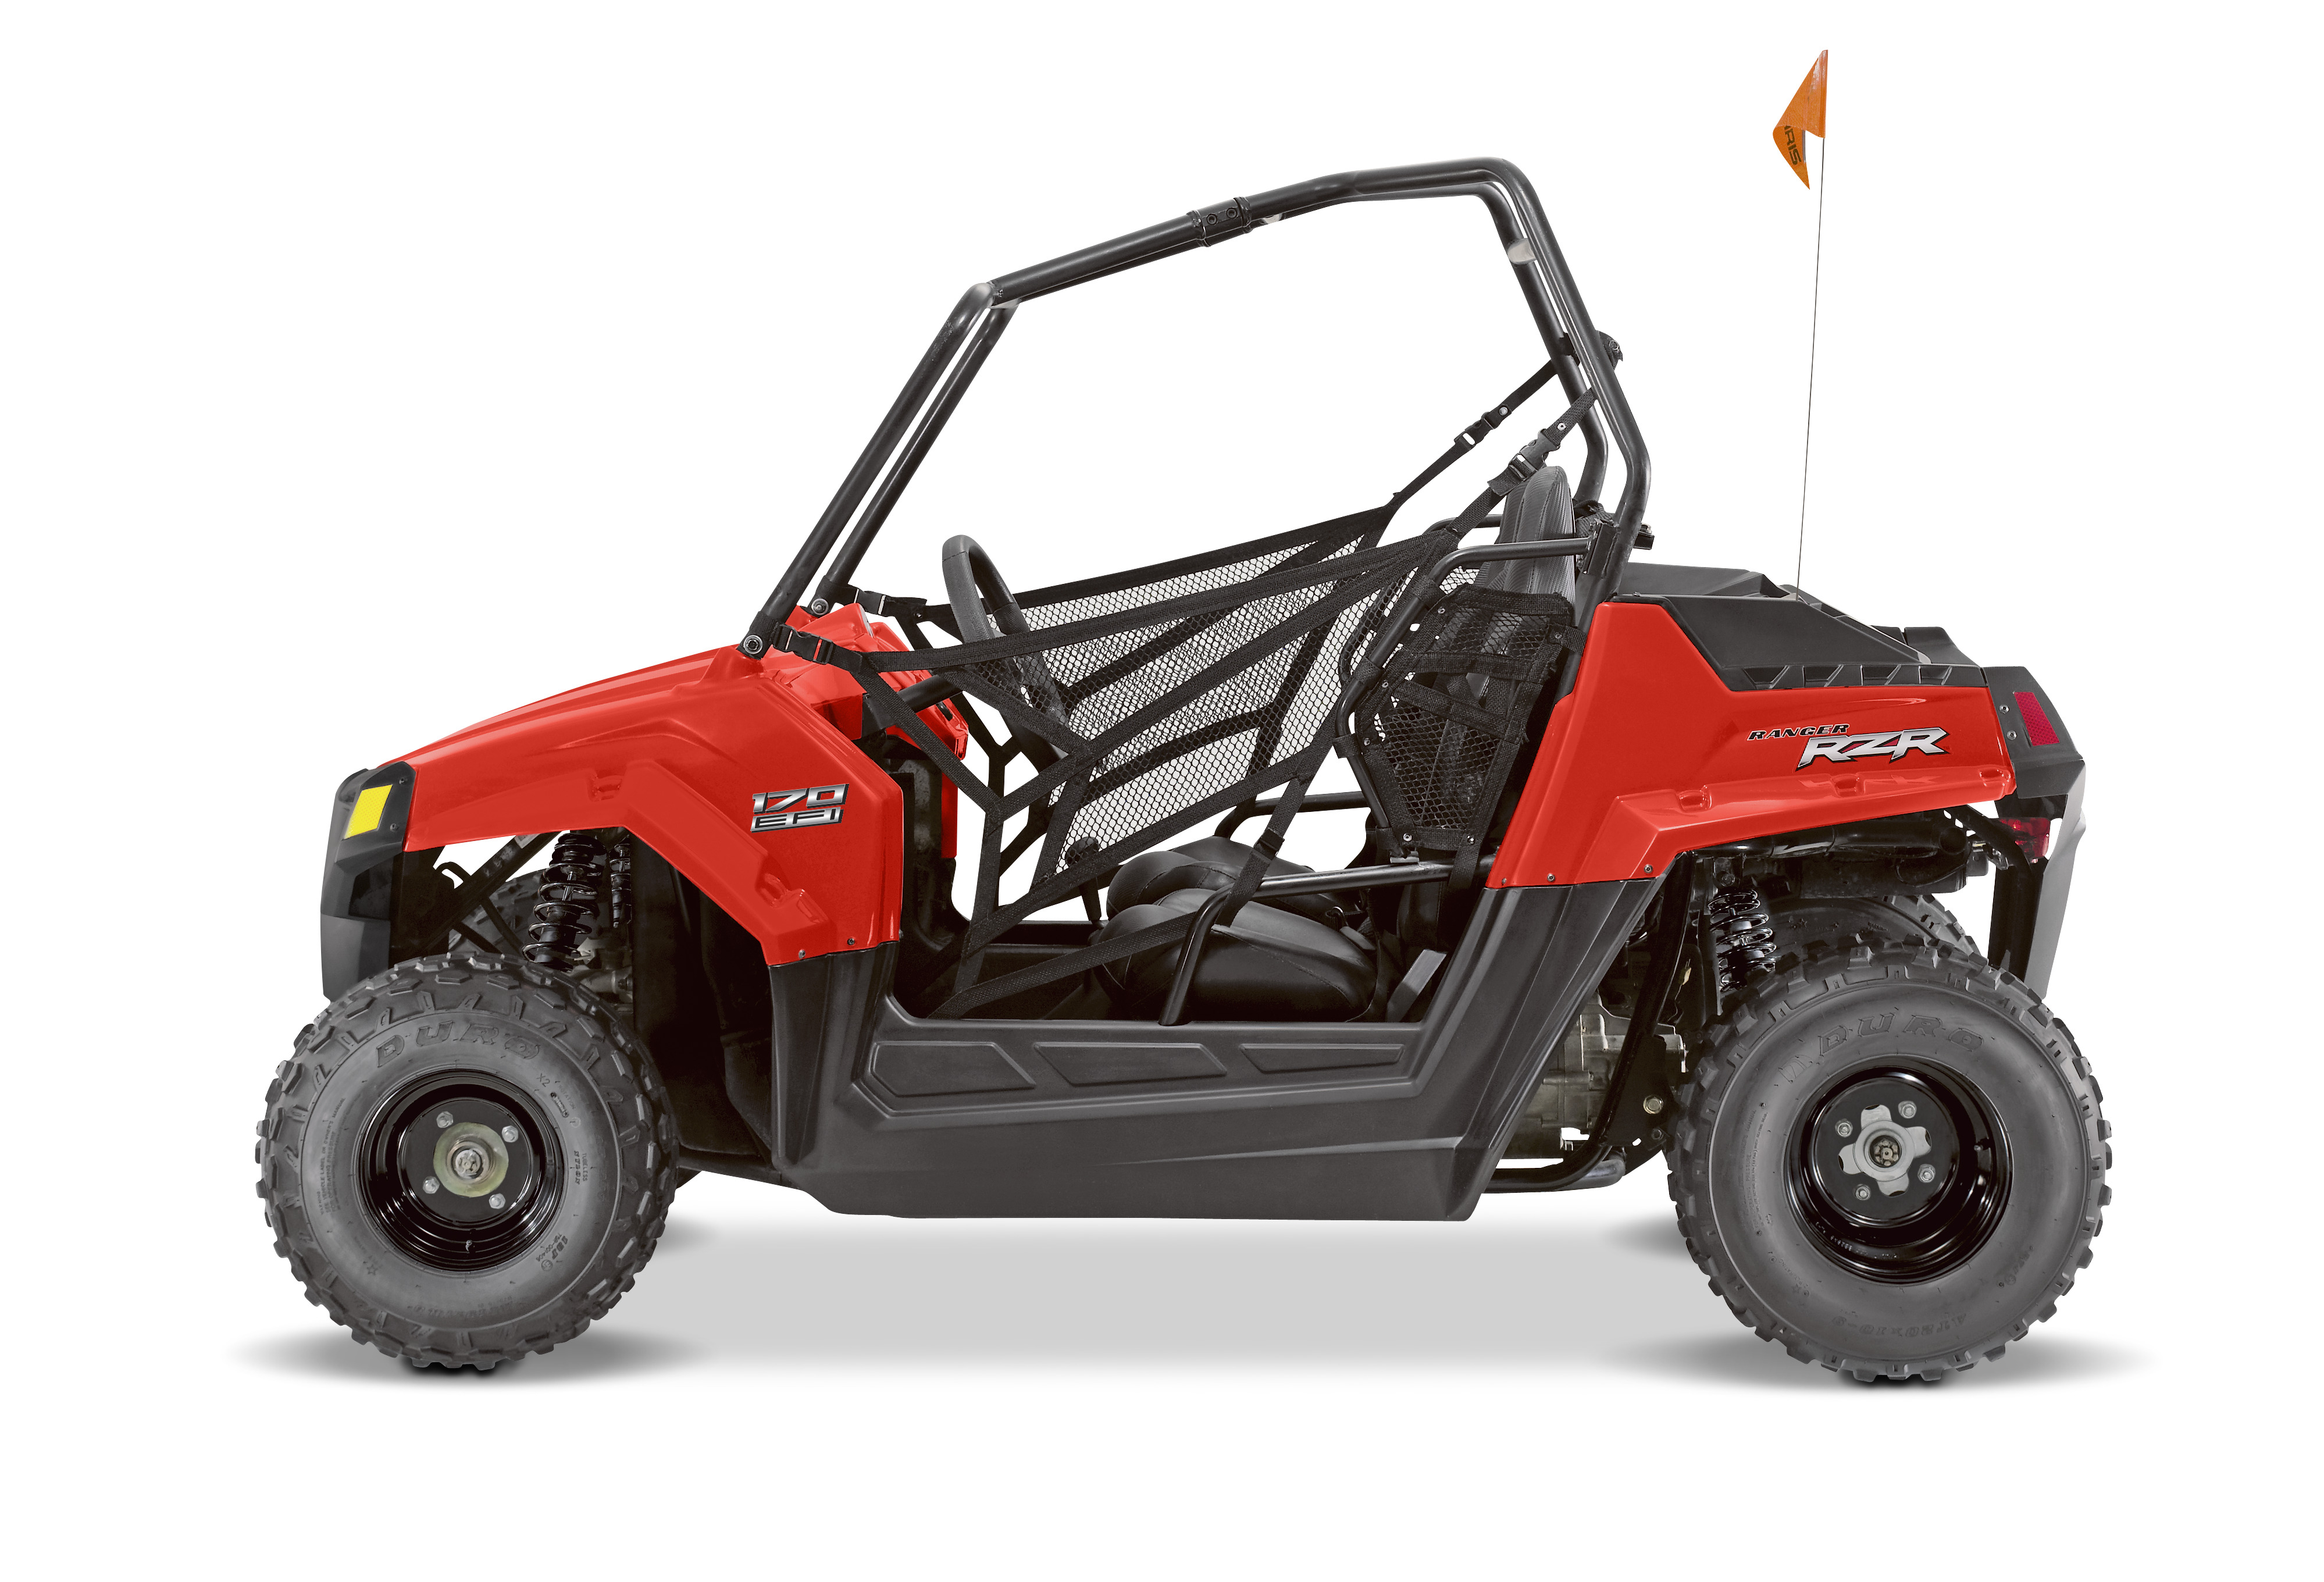 Polaris Recalls Rzr 170 Recreational Off Highway Vehicles Due To Road Safety Harness 2015 In Red